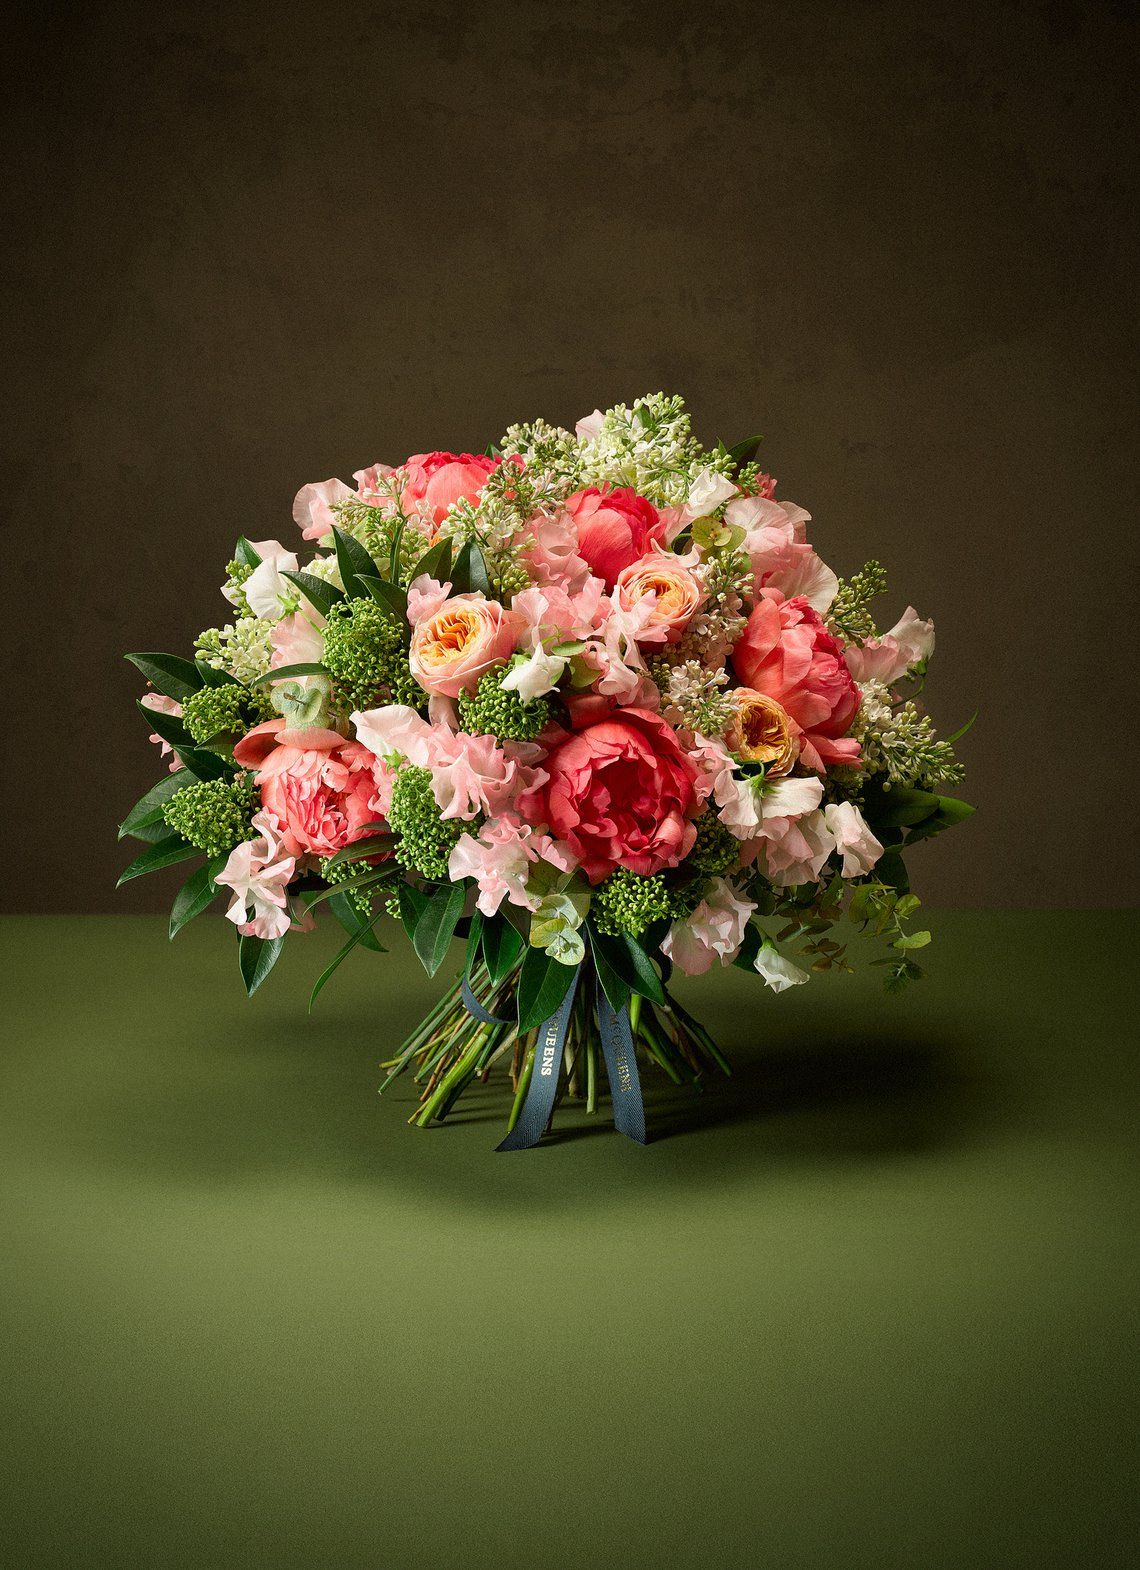 Mcqueens Avril Online Flower Delivery Seasonal Flowers Flower Delivery